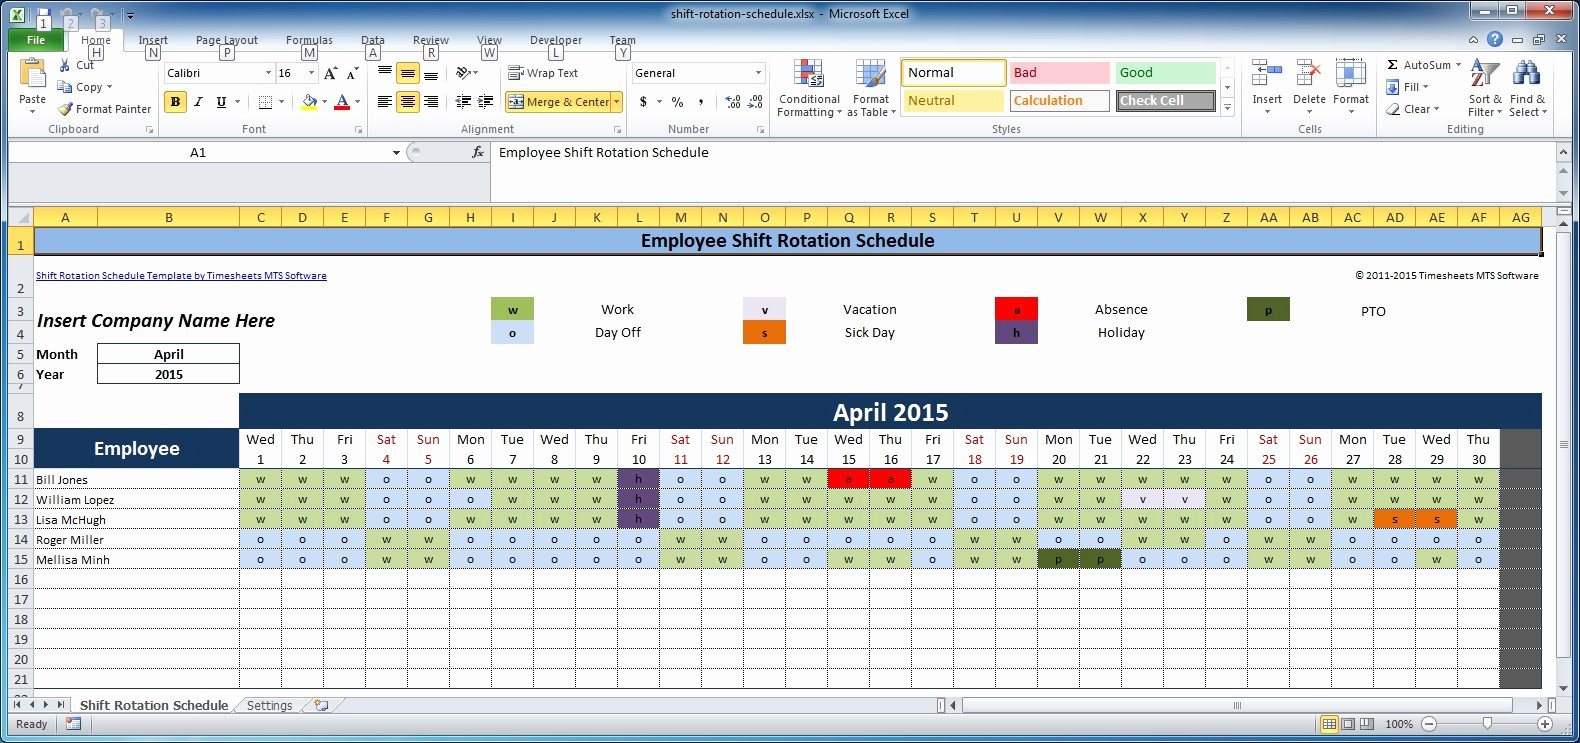 Shift Work Schedule Template Awesome Free Employee and Shift Schedule Templates